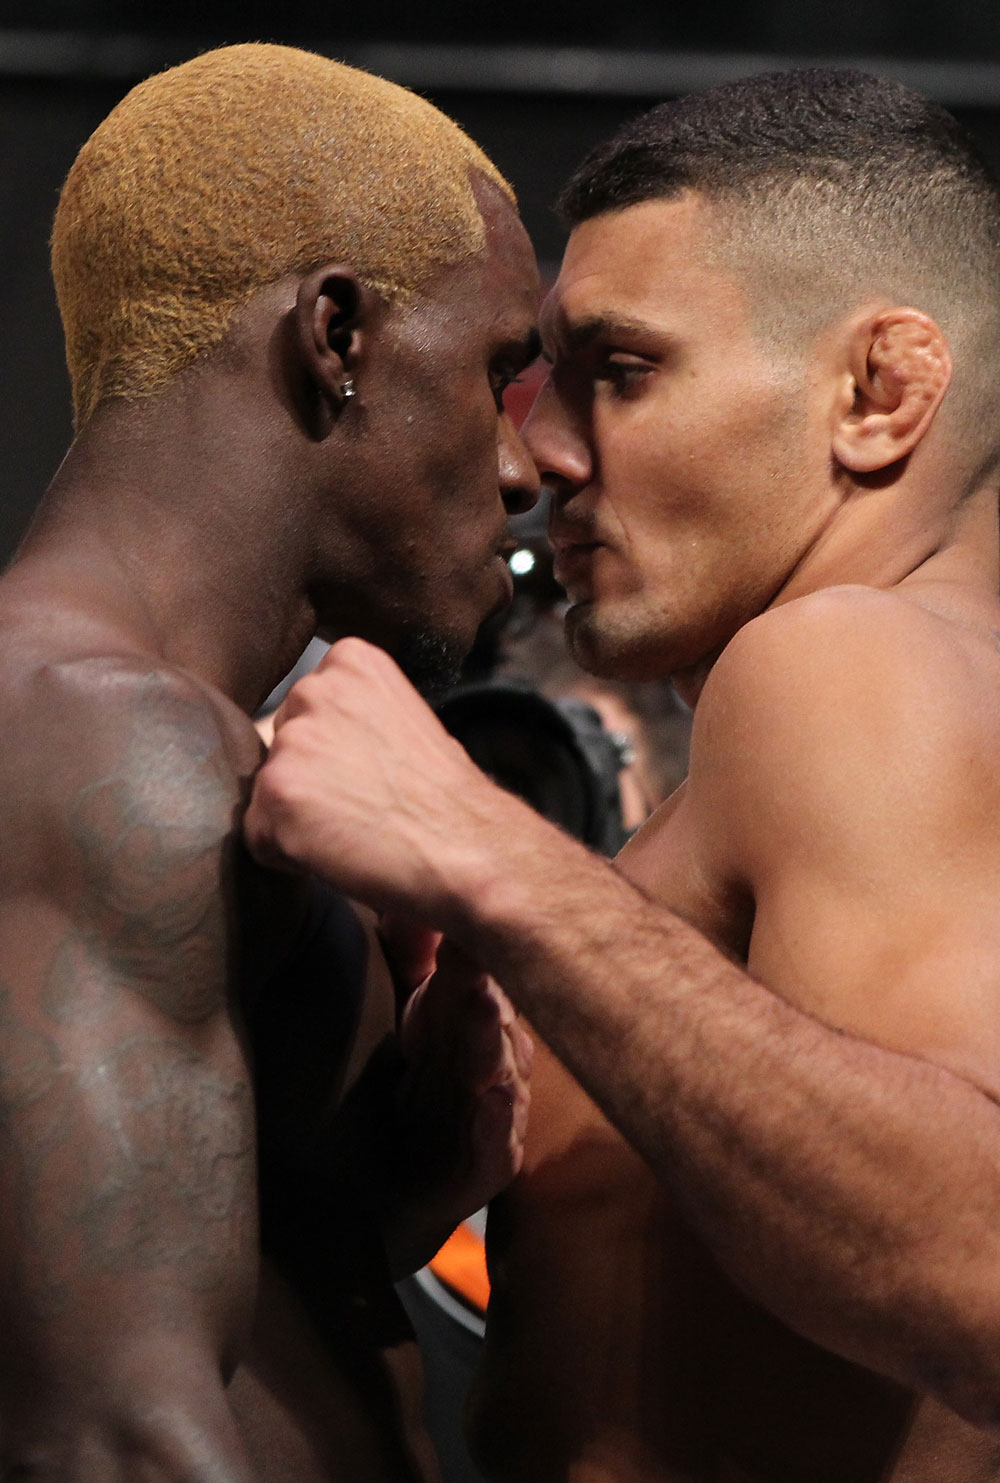 LAS VEGAS, NV - JULY 6:   (L-R) Opponents Melvin Guillard and Fabricio Camoes face off during the UFC 148 Weigh In at the Mandalay Bay Events Center on July 6, 2012 in Las Vegas, Nevada.  (Photo by Josh Hedges/Zuffa LLC/Zuffa LLC via Getty Images)